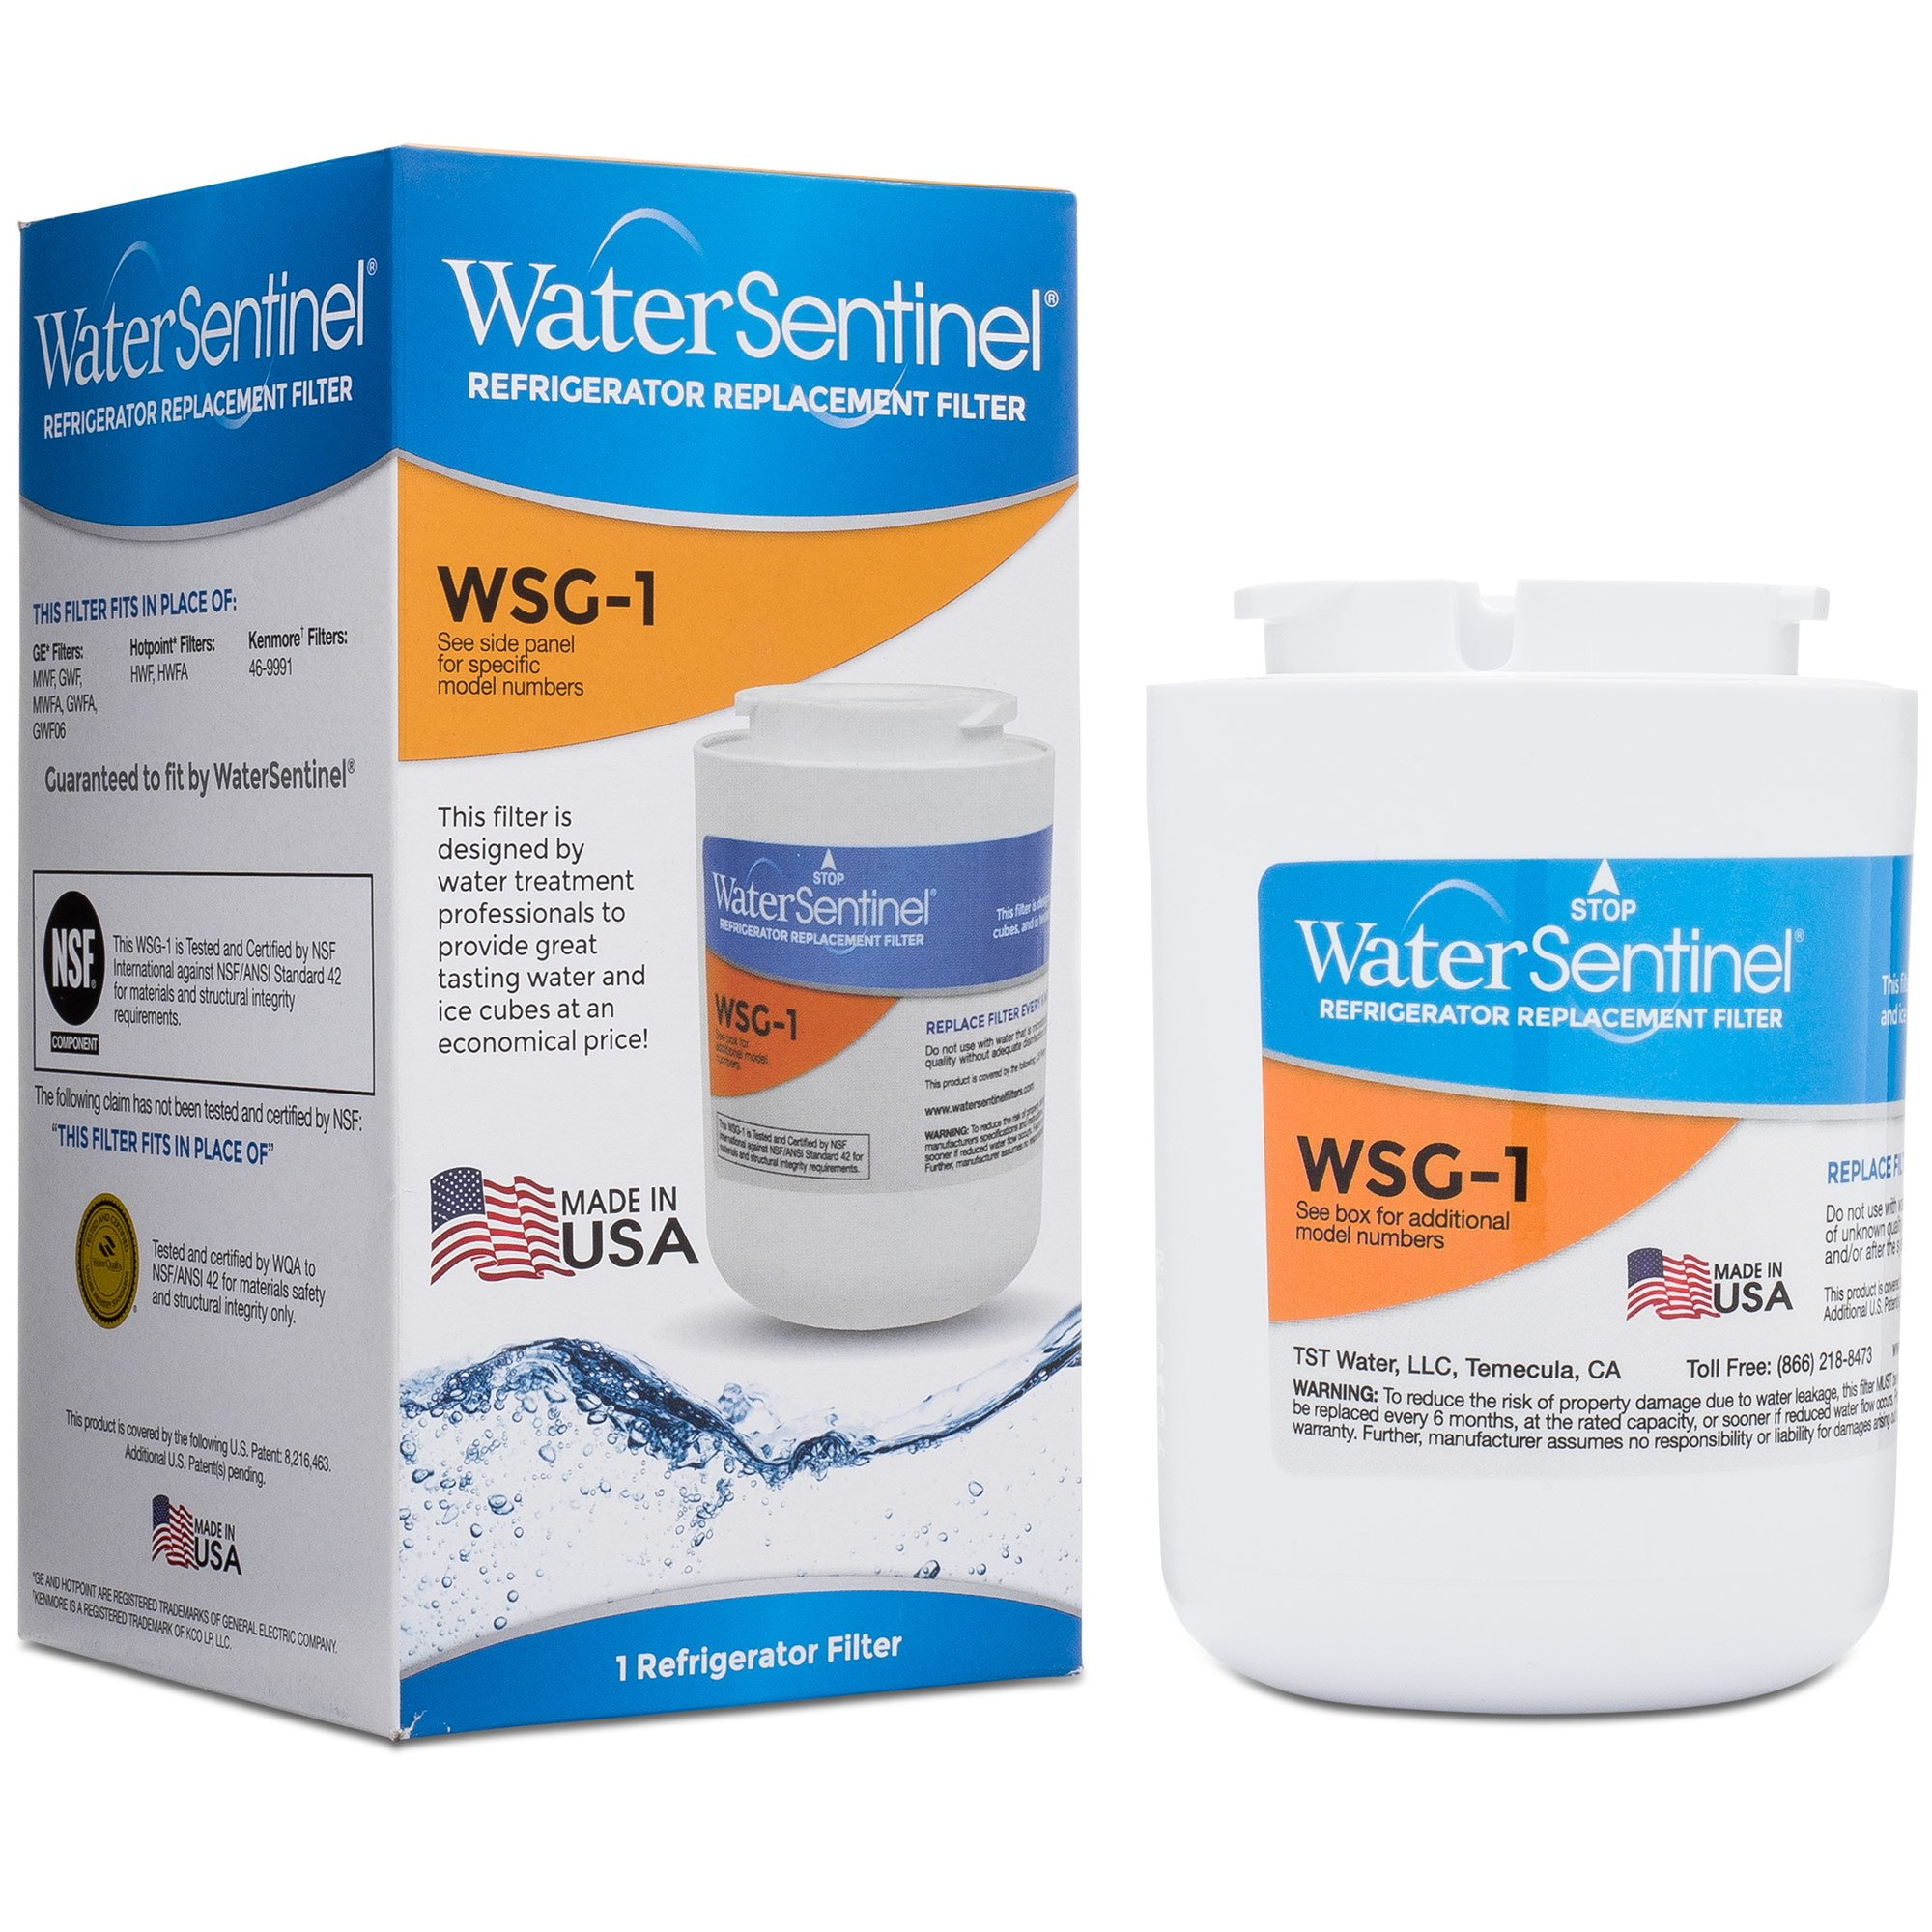 WaterSentinel WSG-1 Made in USA Refrigerator Replacement Filter: Fits GE MWF Filters by WaterSentinel